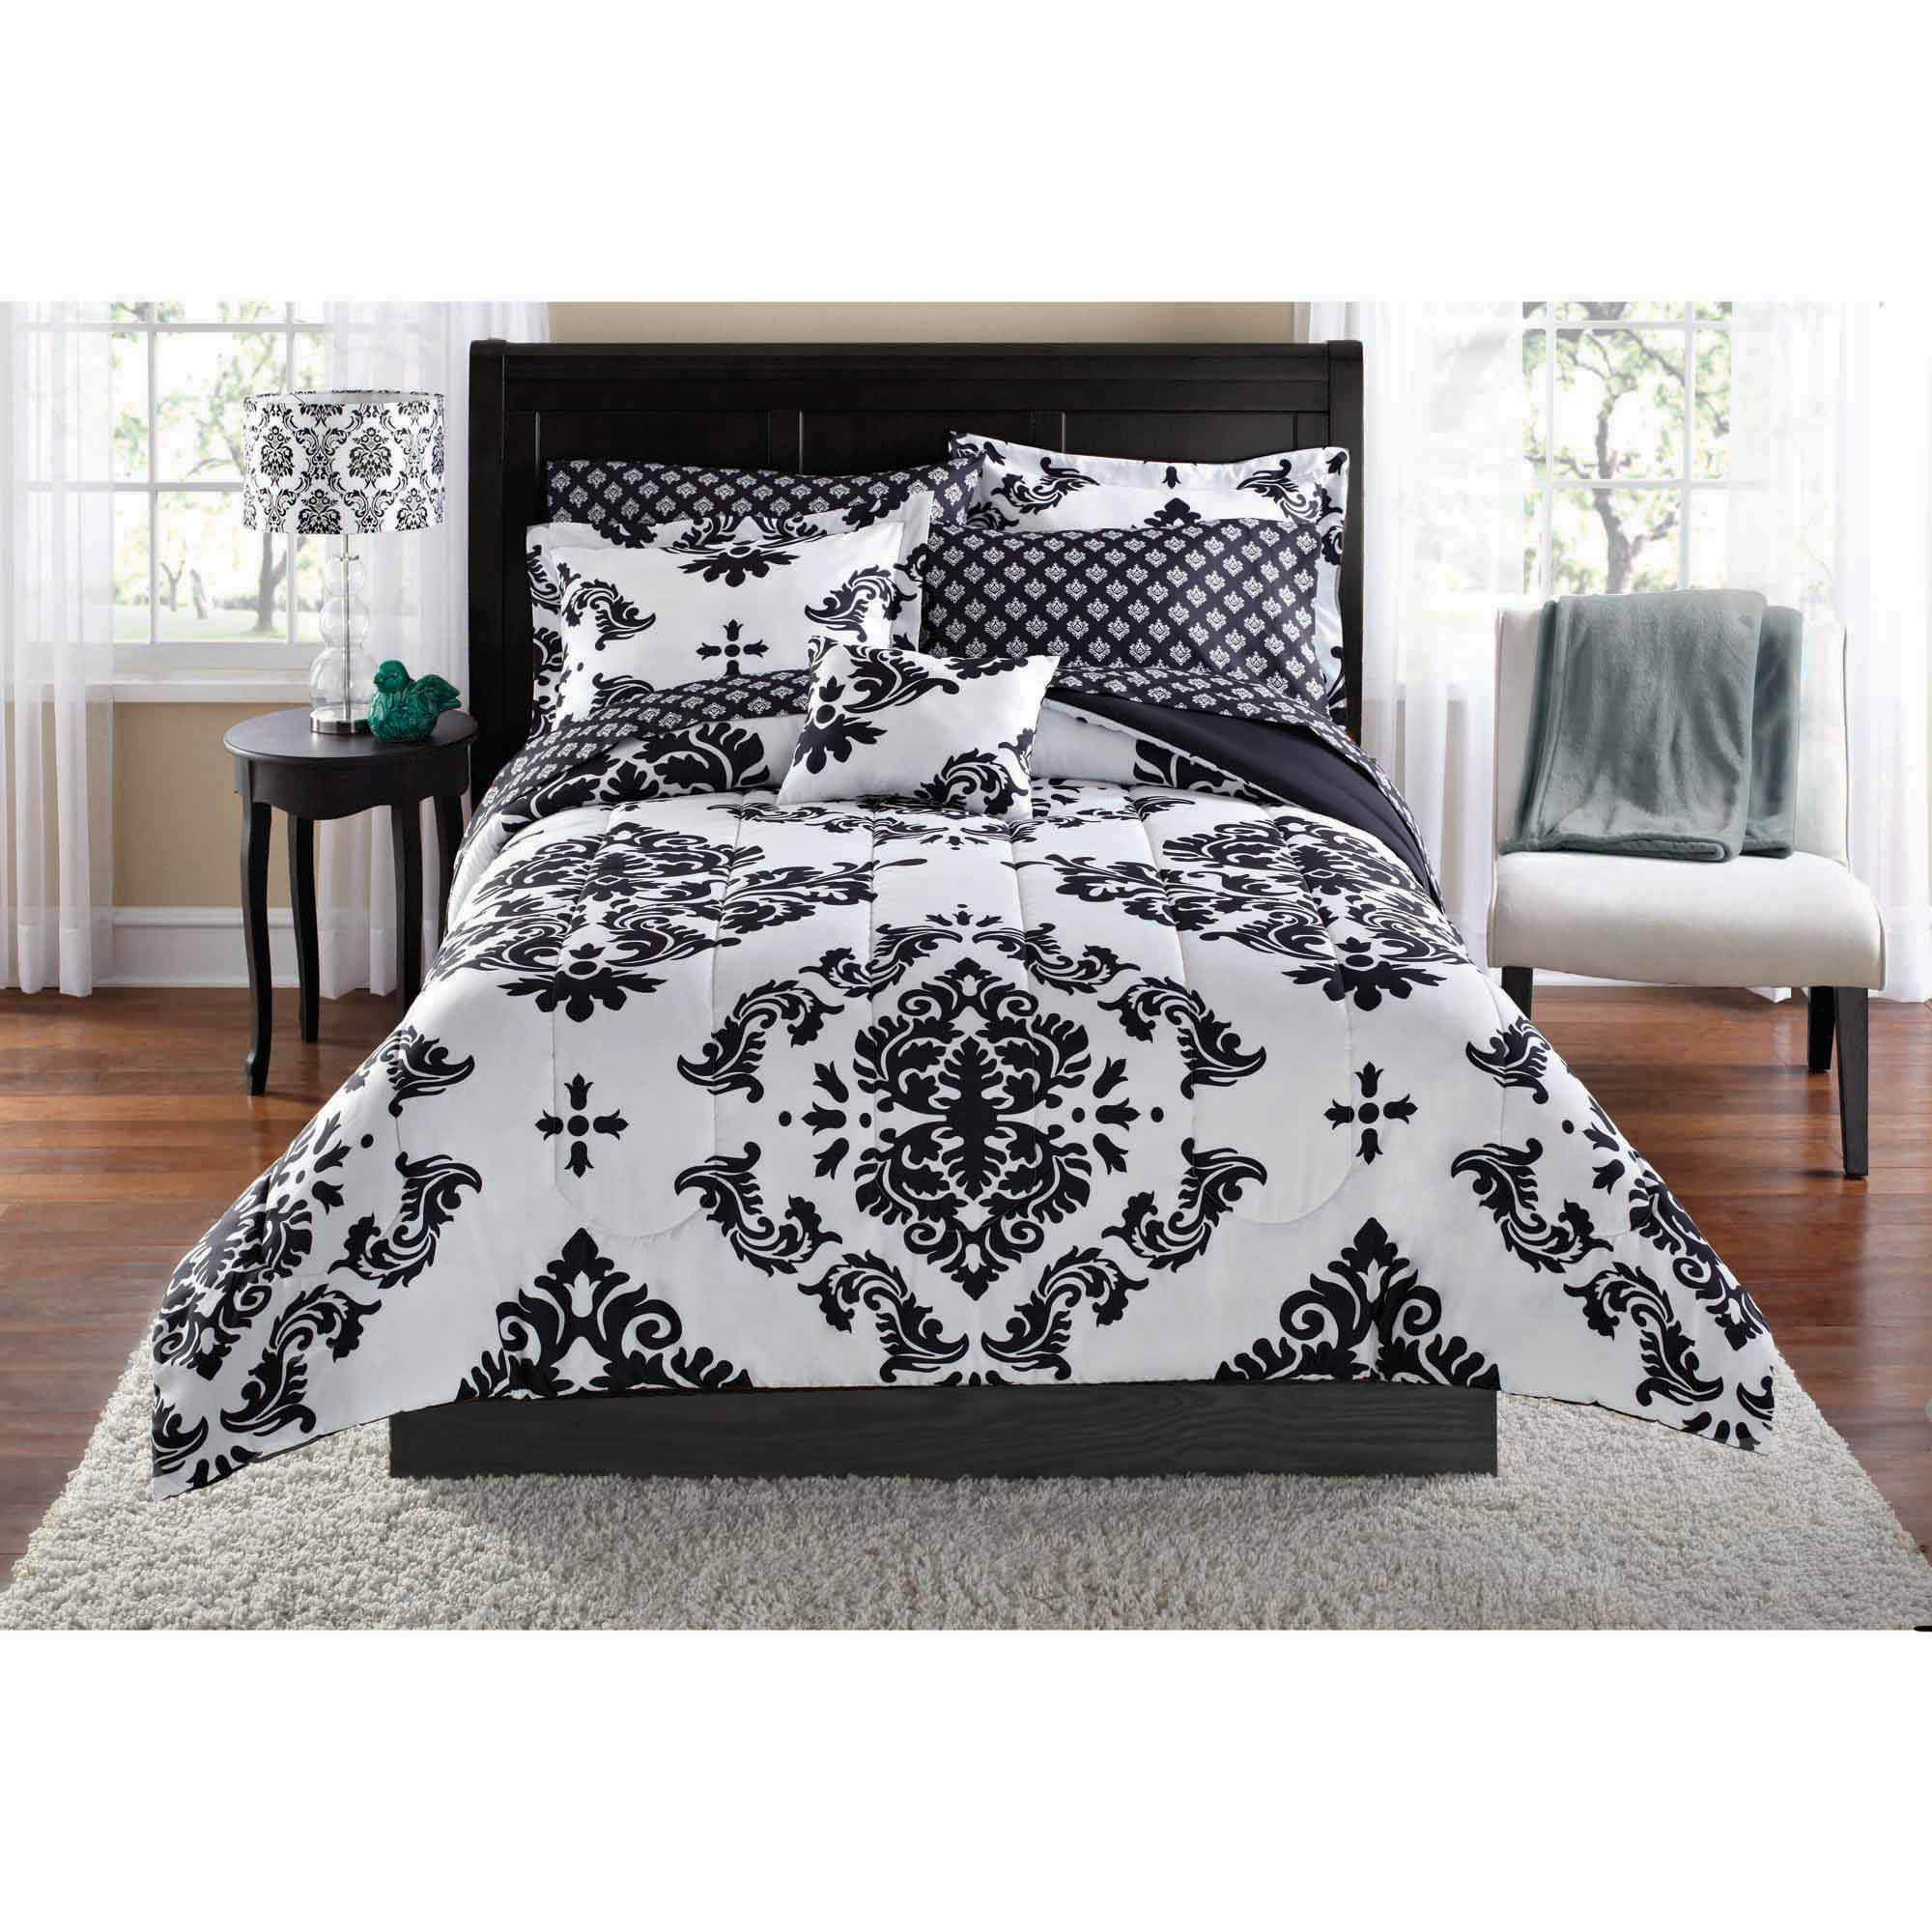 Mainstays Classic Noir Bed in a Bag Bedding Set Walmart